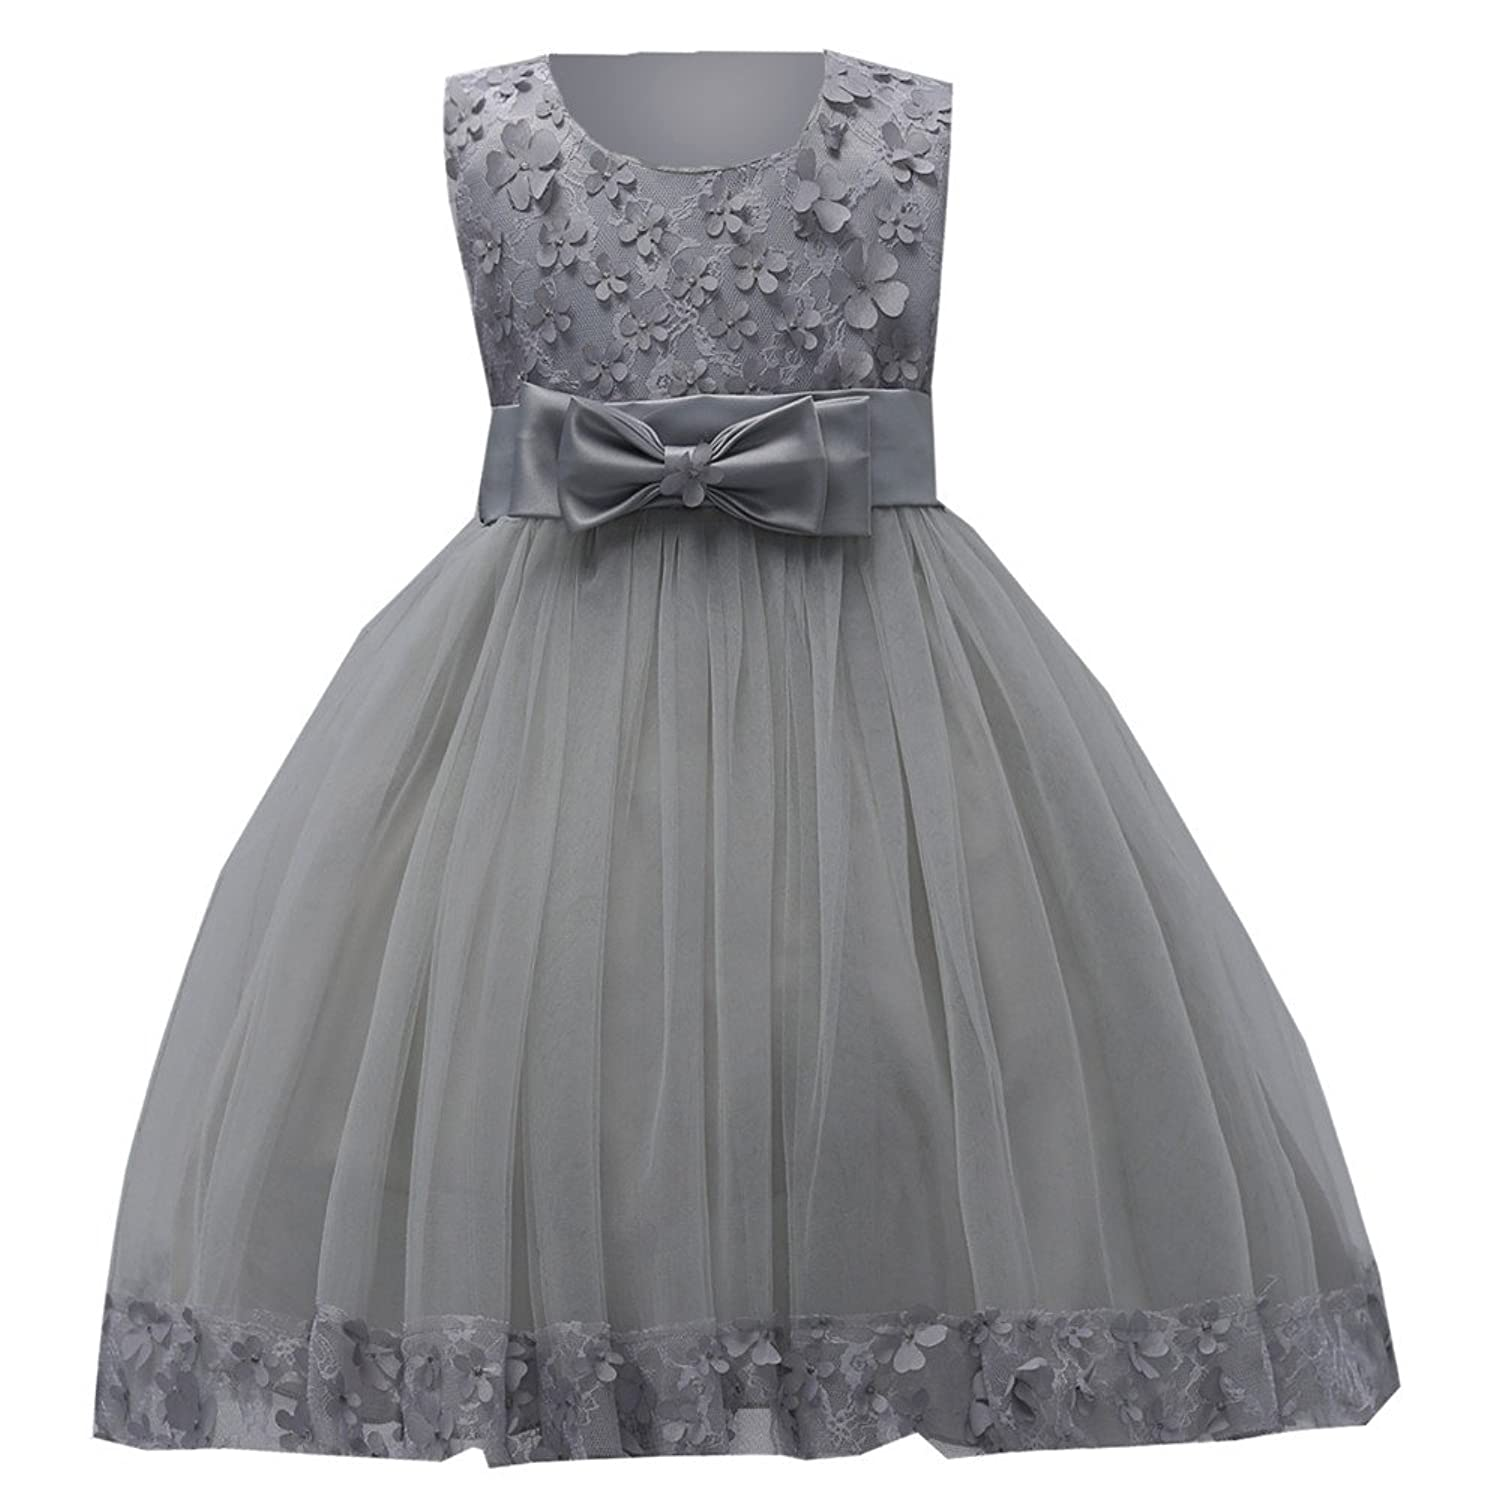 4bdc29e3be Top 10 wholesale Discount Flower Girl Dresses - Chinabrands.com